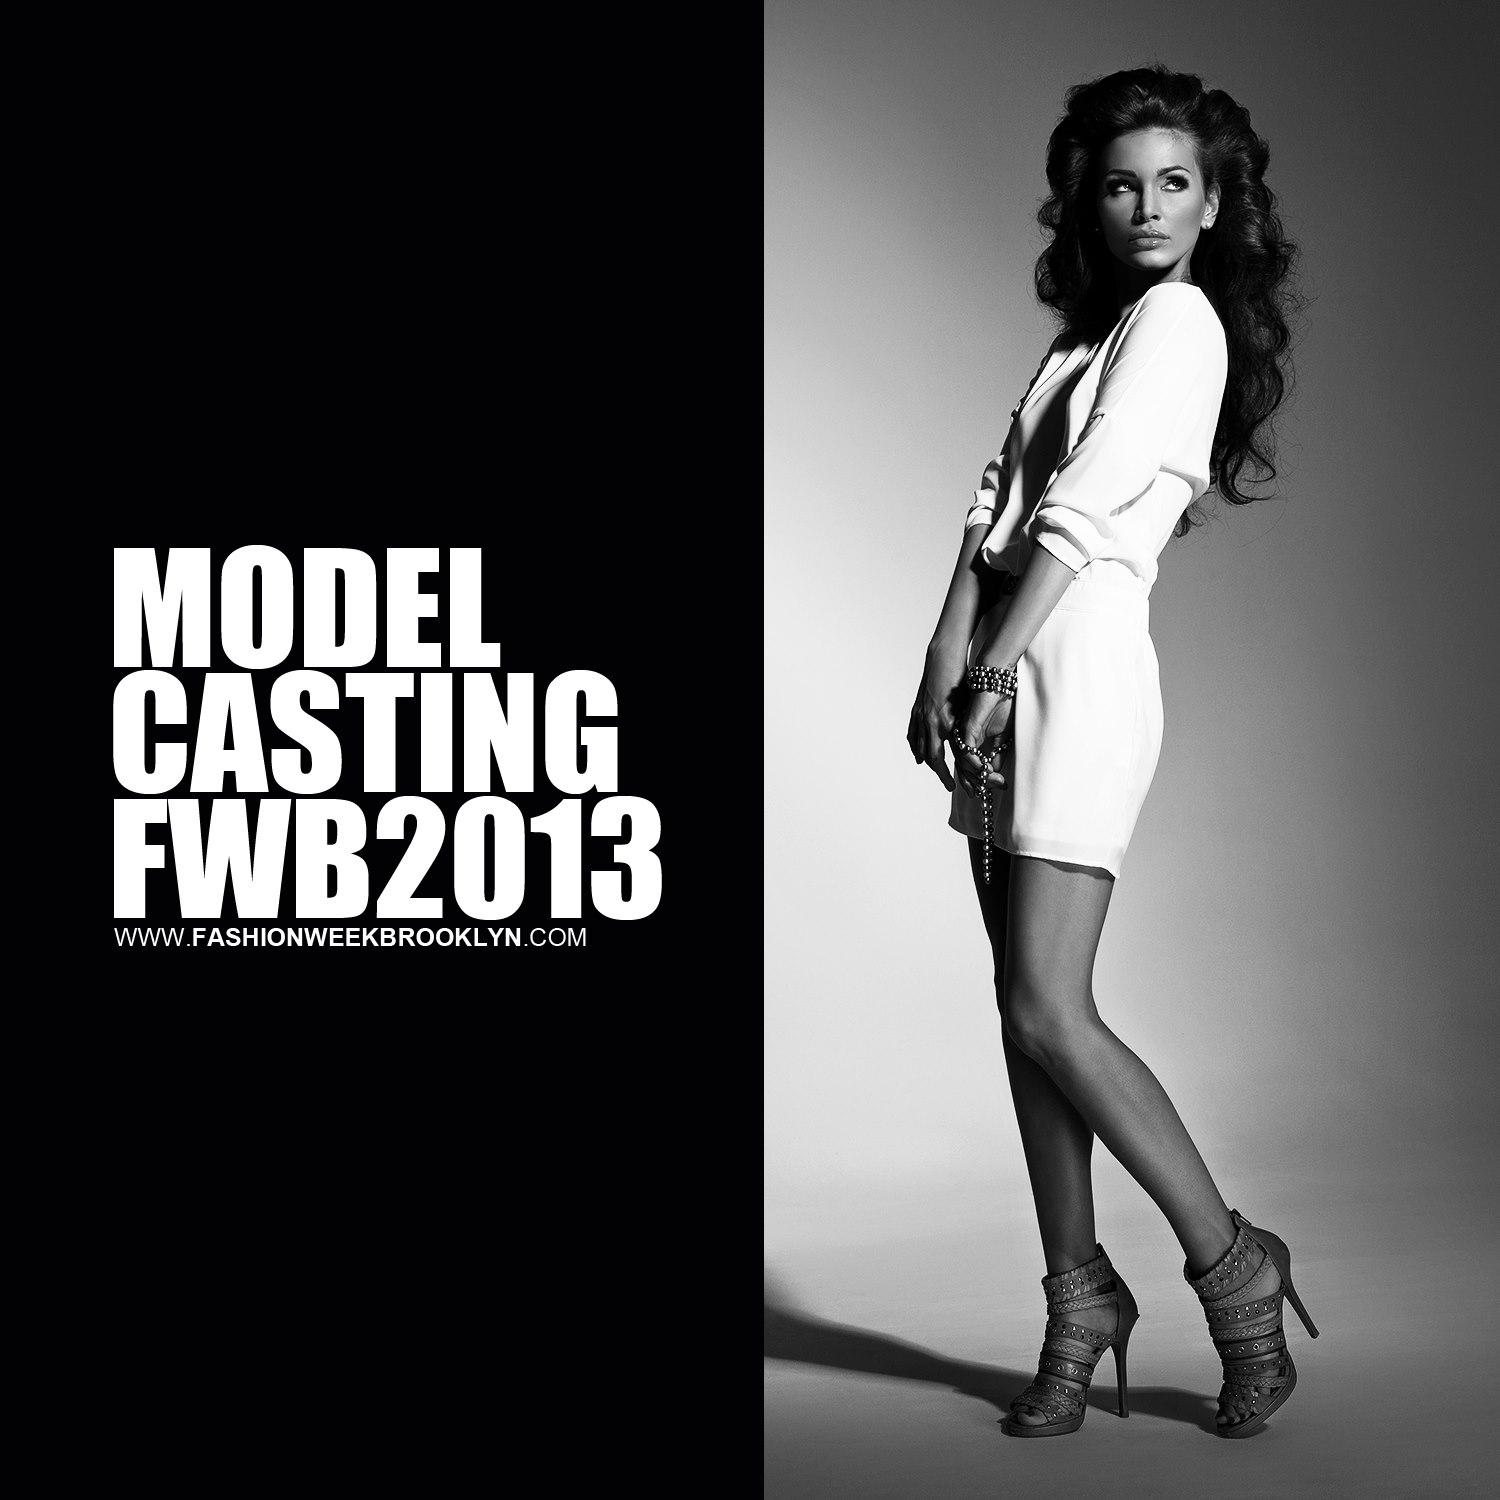 modelcall fashion week brooklyn model casting audio fashion do you want to be apart of greatness you know fashion week brooklyn is right around the corner right why not try to get into the established fashion